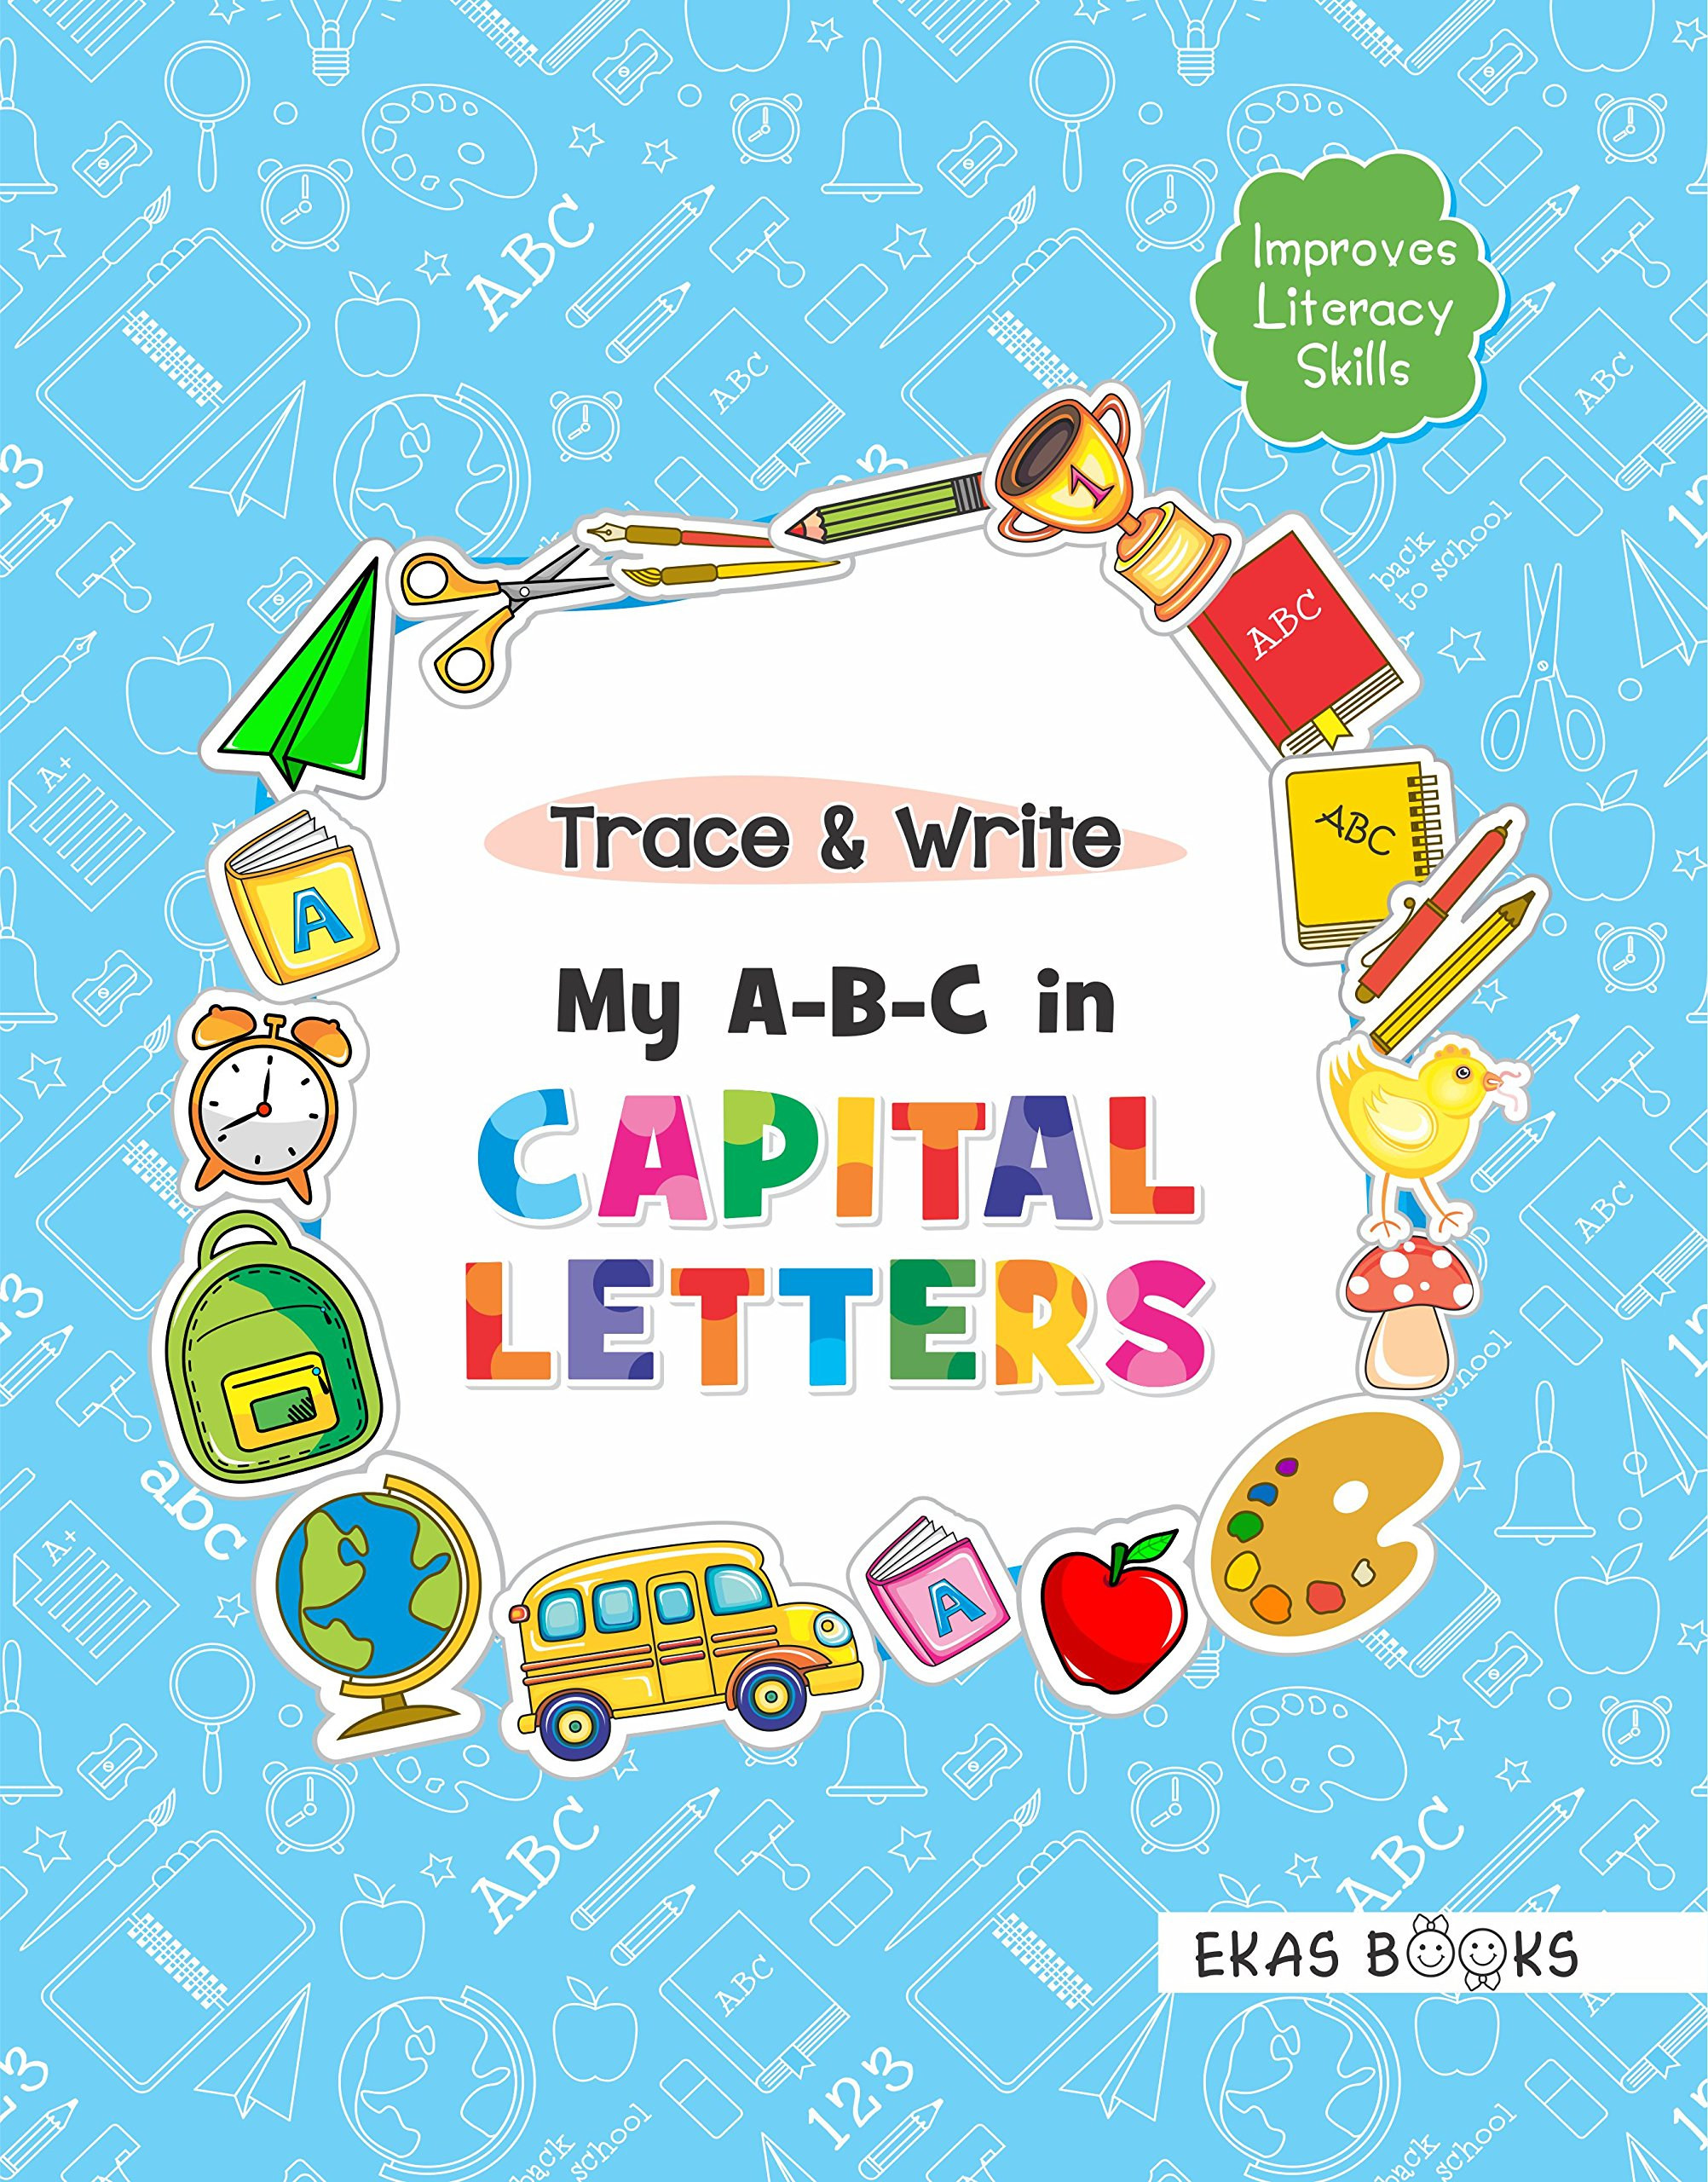 Buy Alphabet Book for 3 years old kids (Trace & Write - My A-B-C in ...